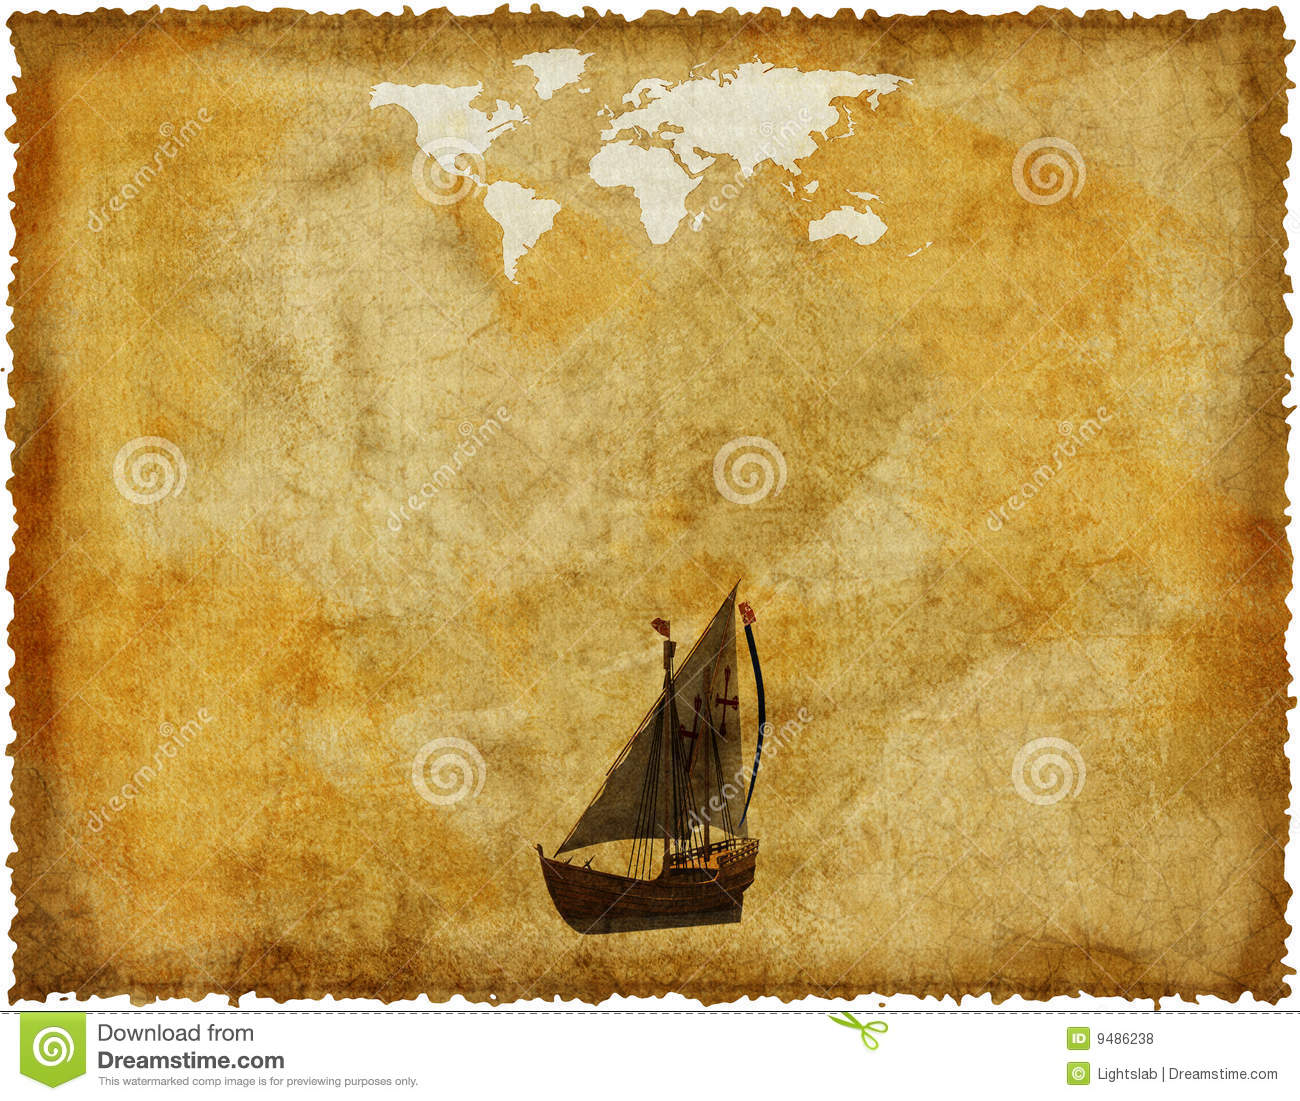 Old world map on grunge paper stock illustration illustration of old world map on grunge paper gumiabroncs Choice Image